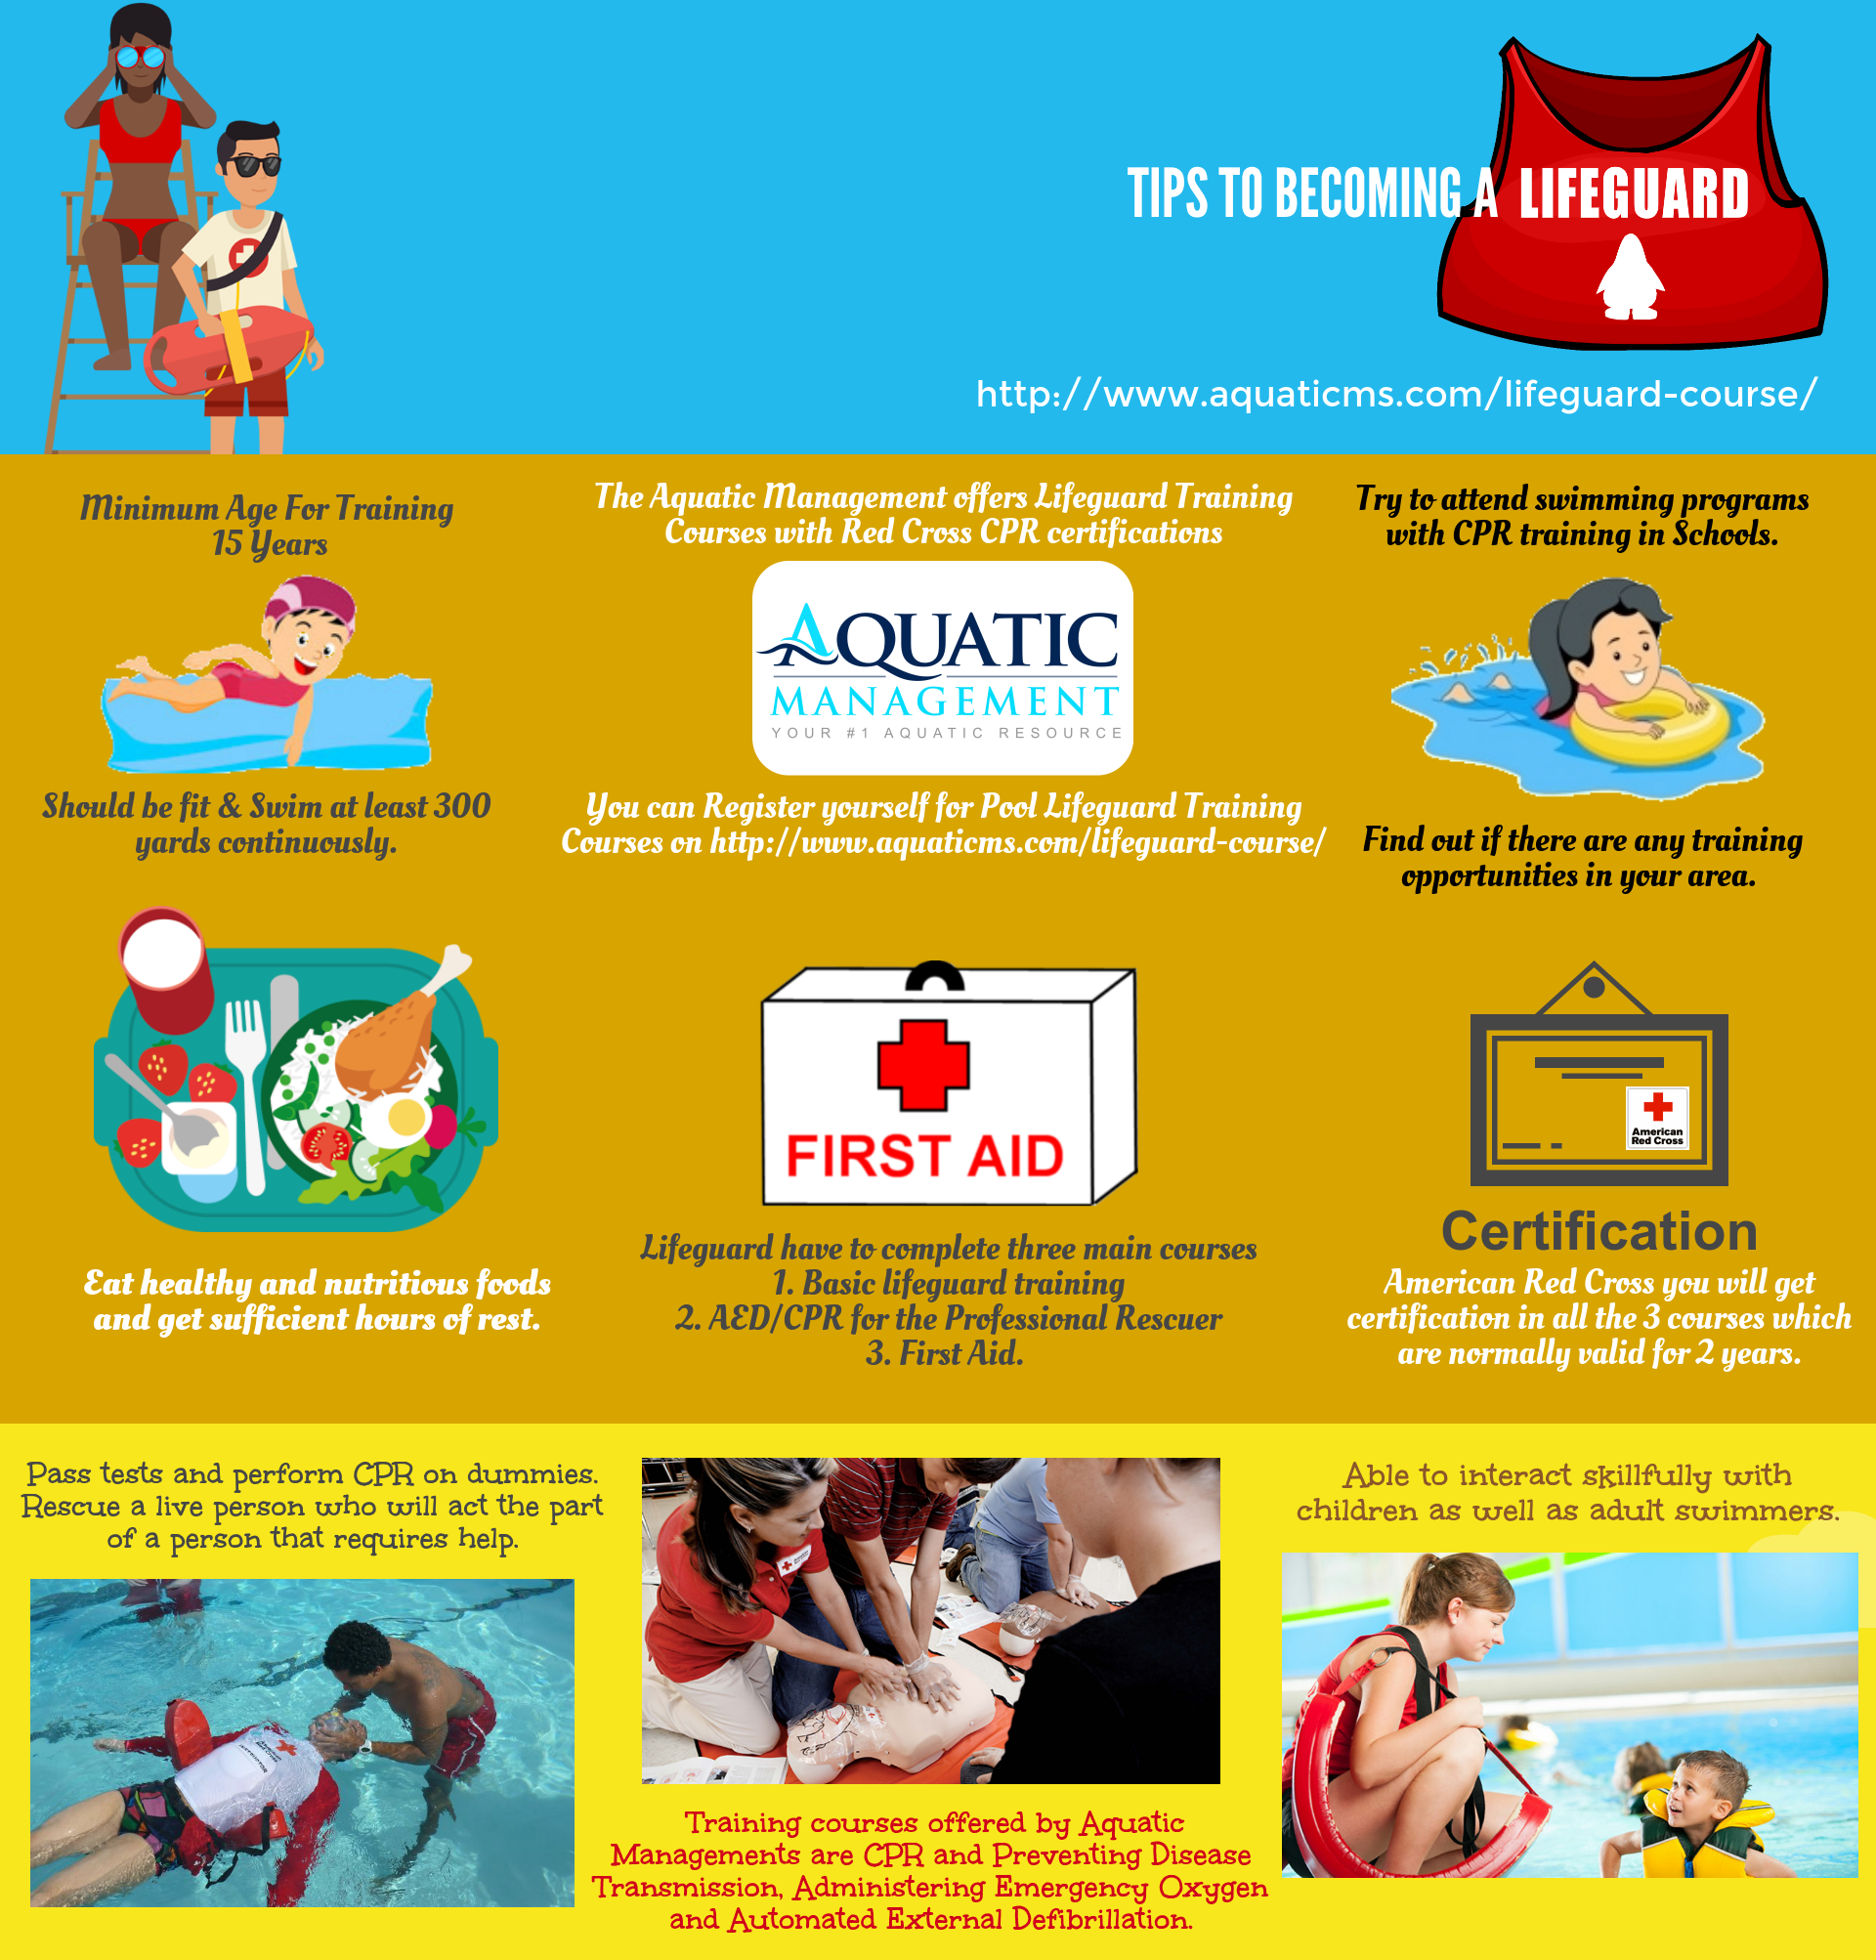 Usa management is a best lifeguard certification company offers usa management is a best lifeguard certification company offers lifeguard certification and lifeguard jobs lifeguard certifications pinterest 1betcityfo Image collections